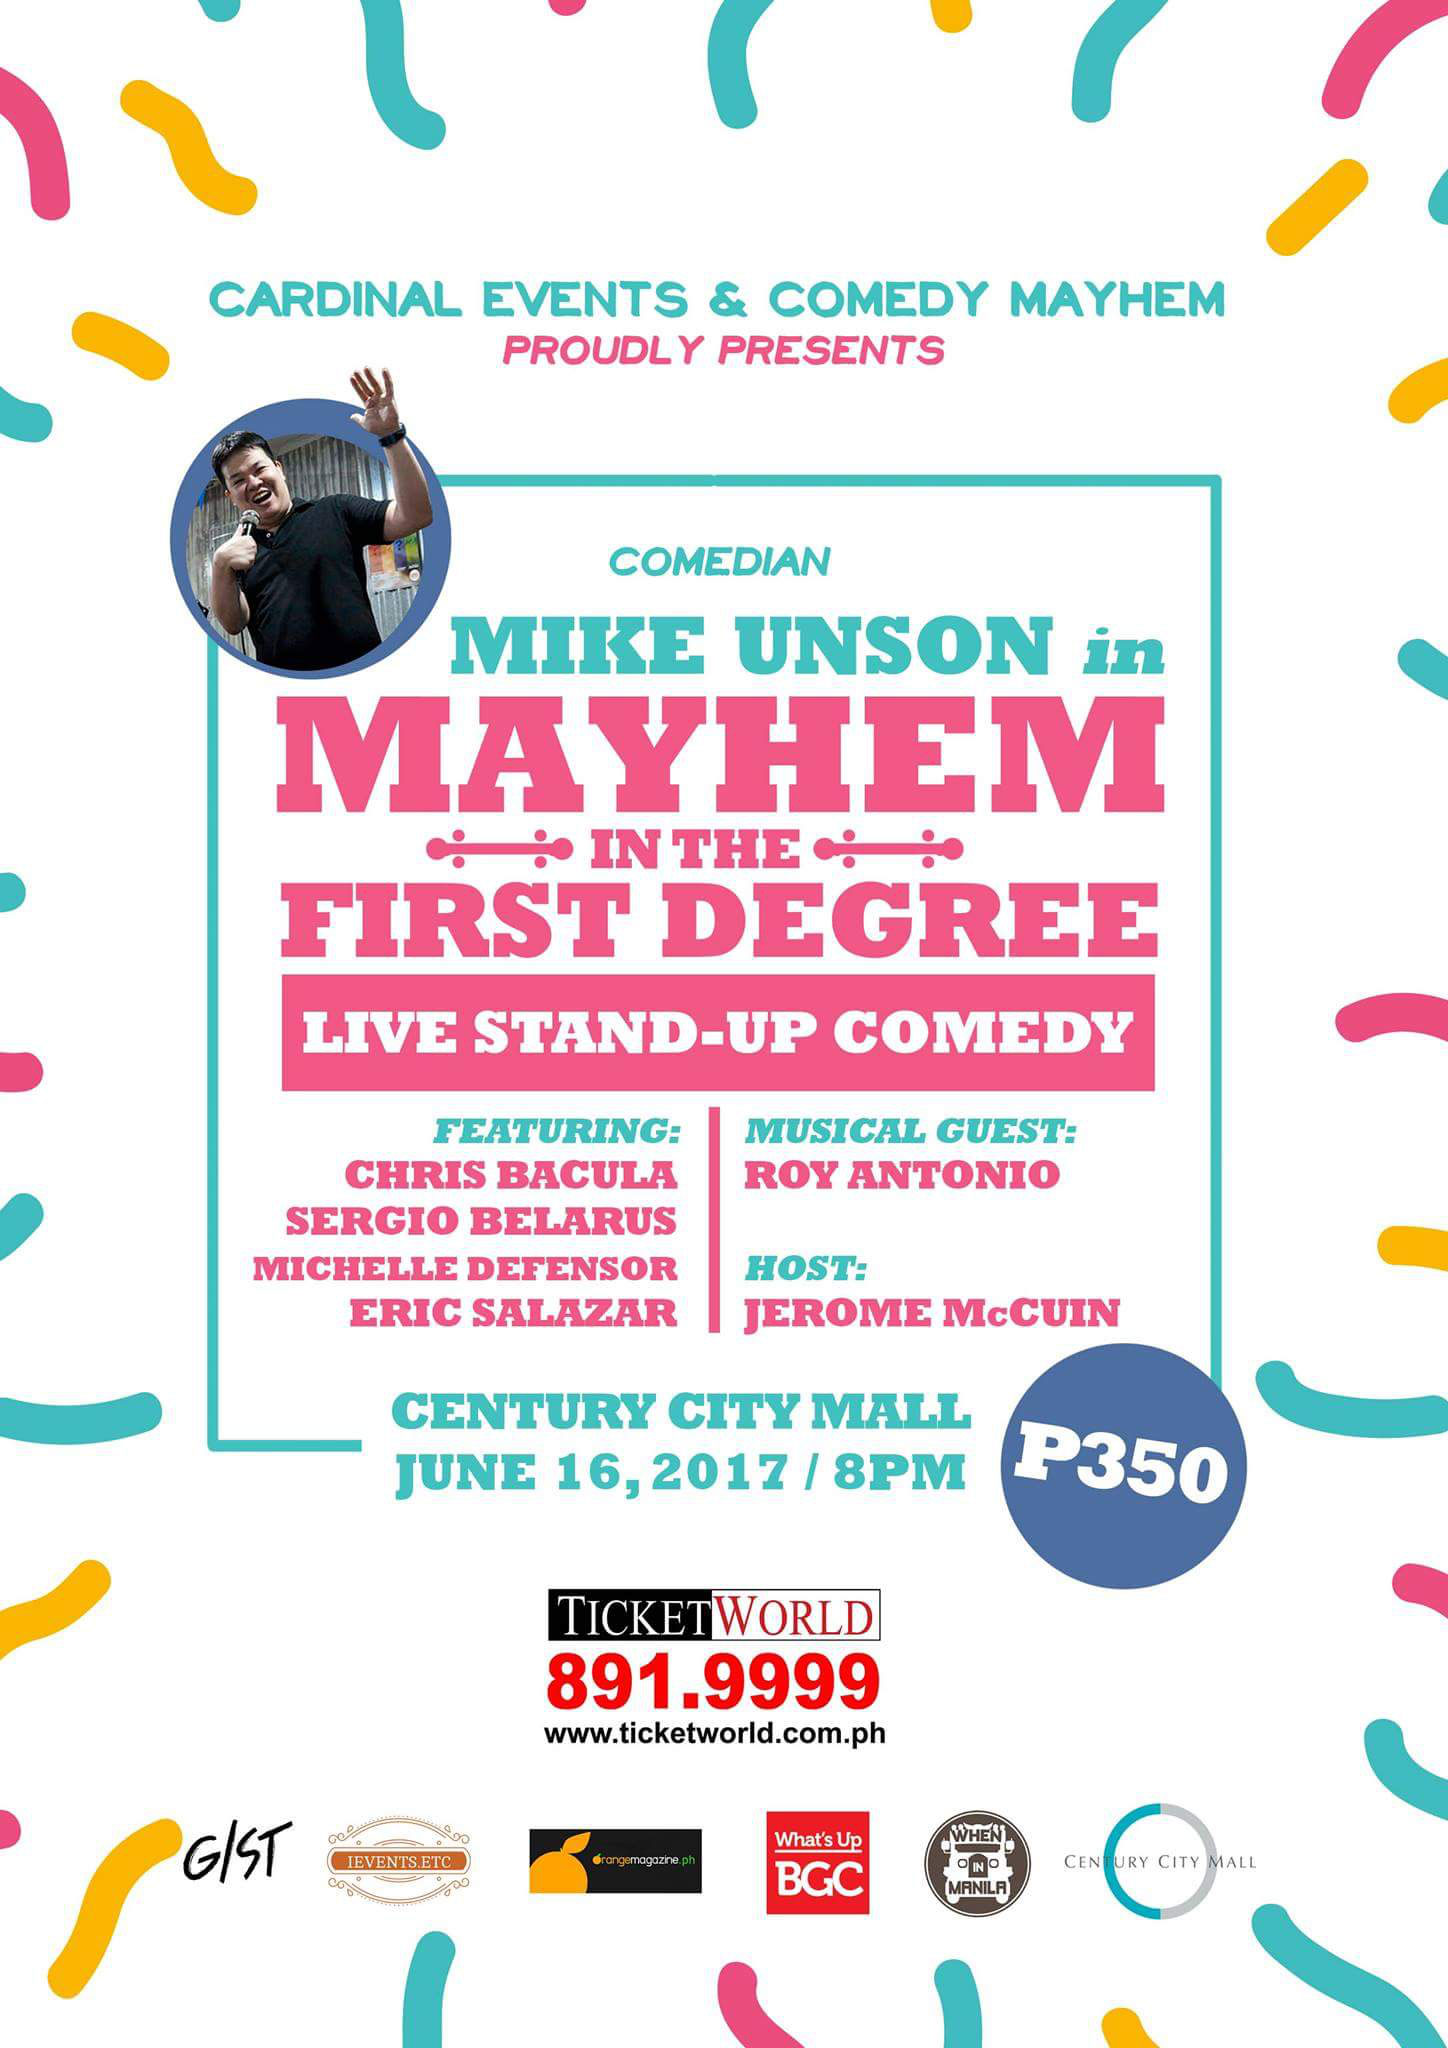 MIKE UNSON in MAYHEM in the First Degree - Live Stand-Up Comedy